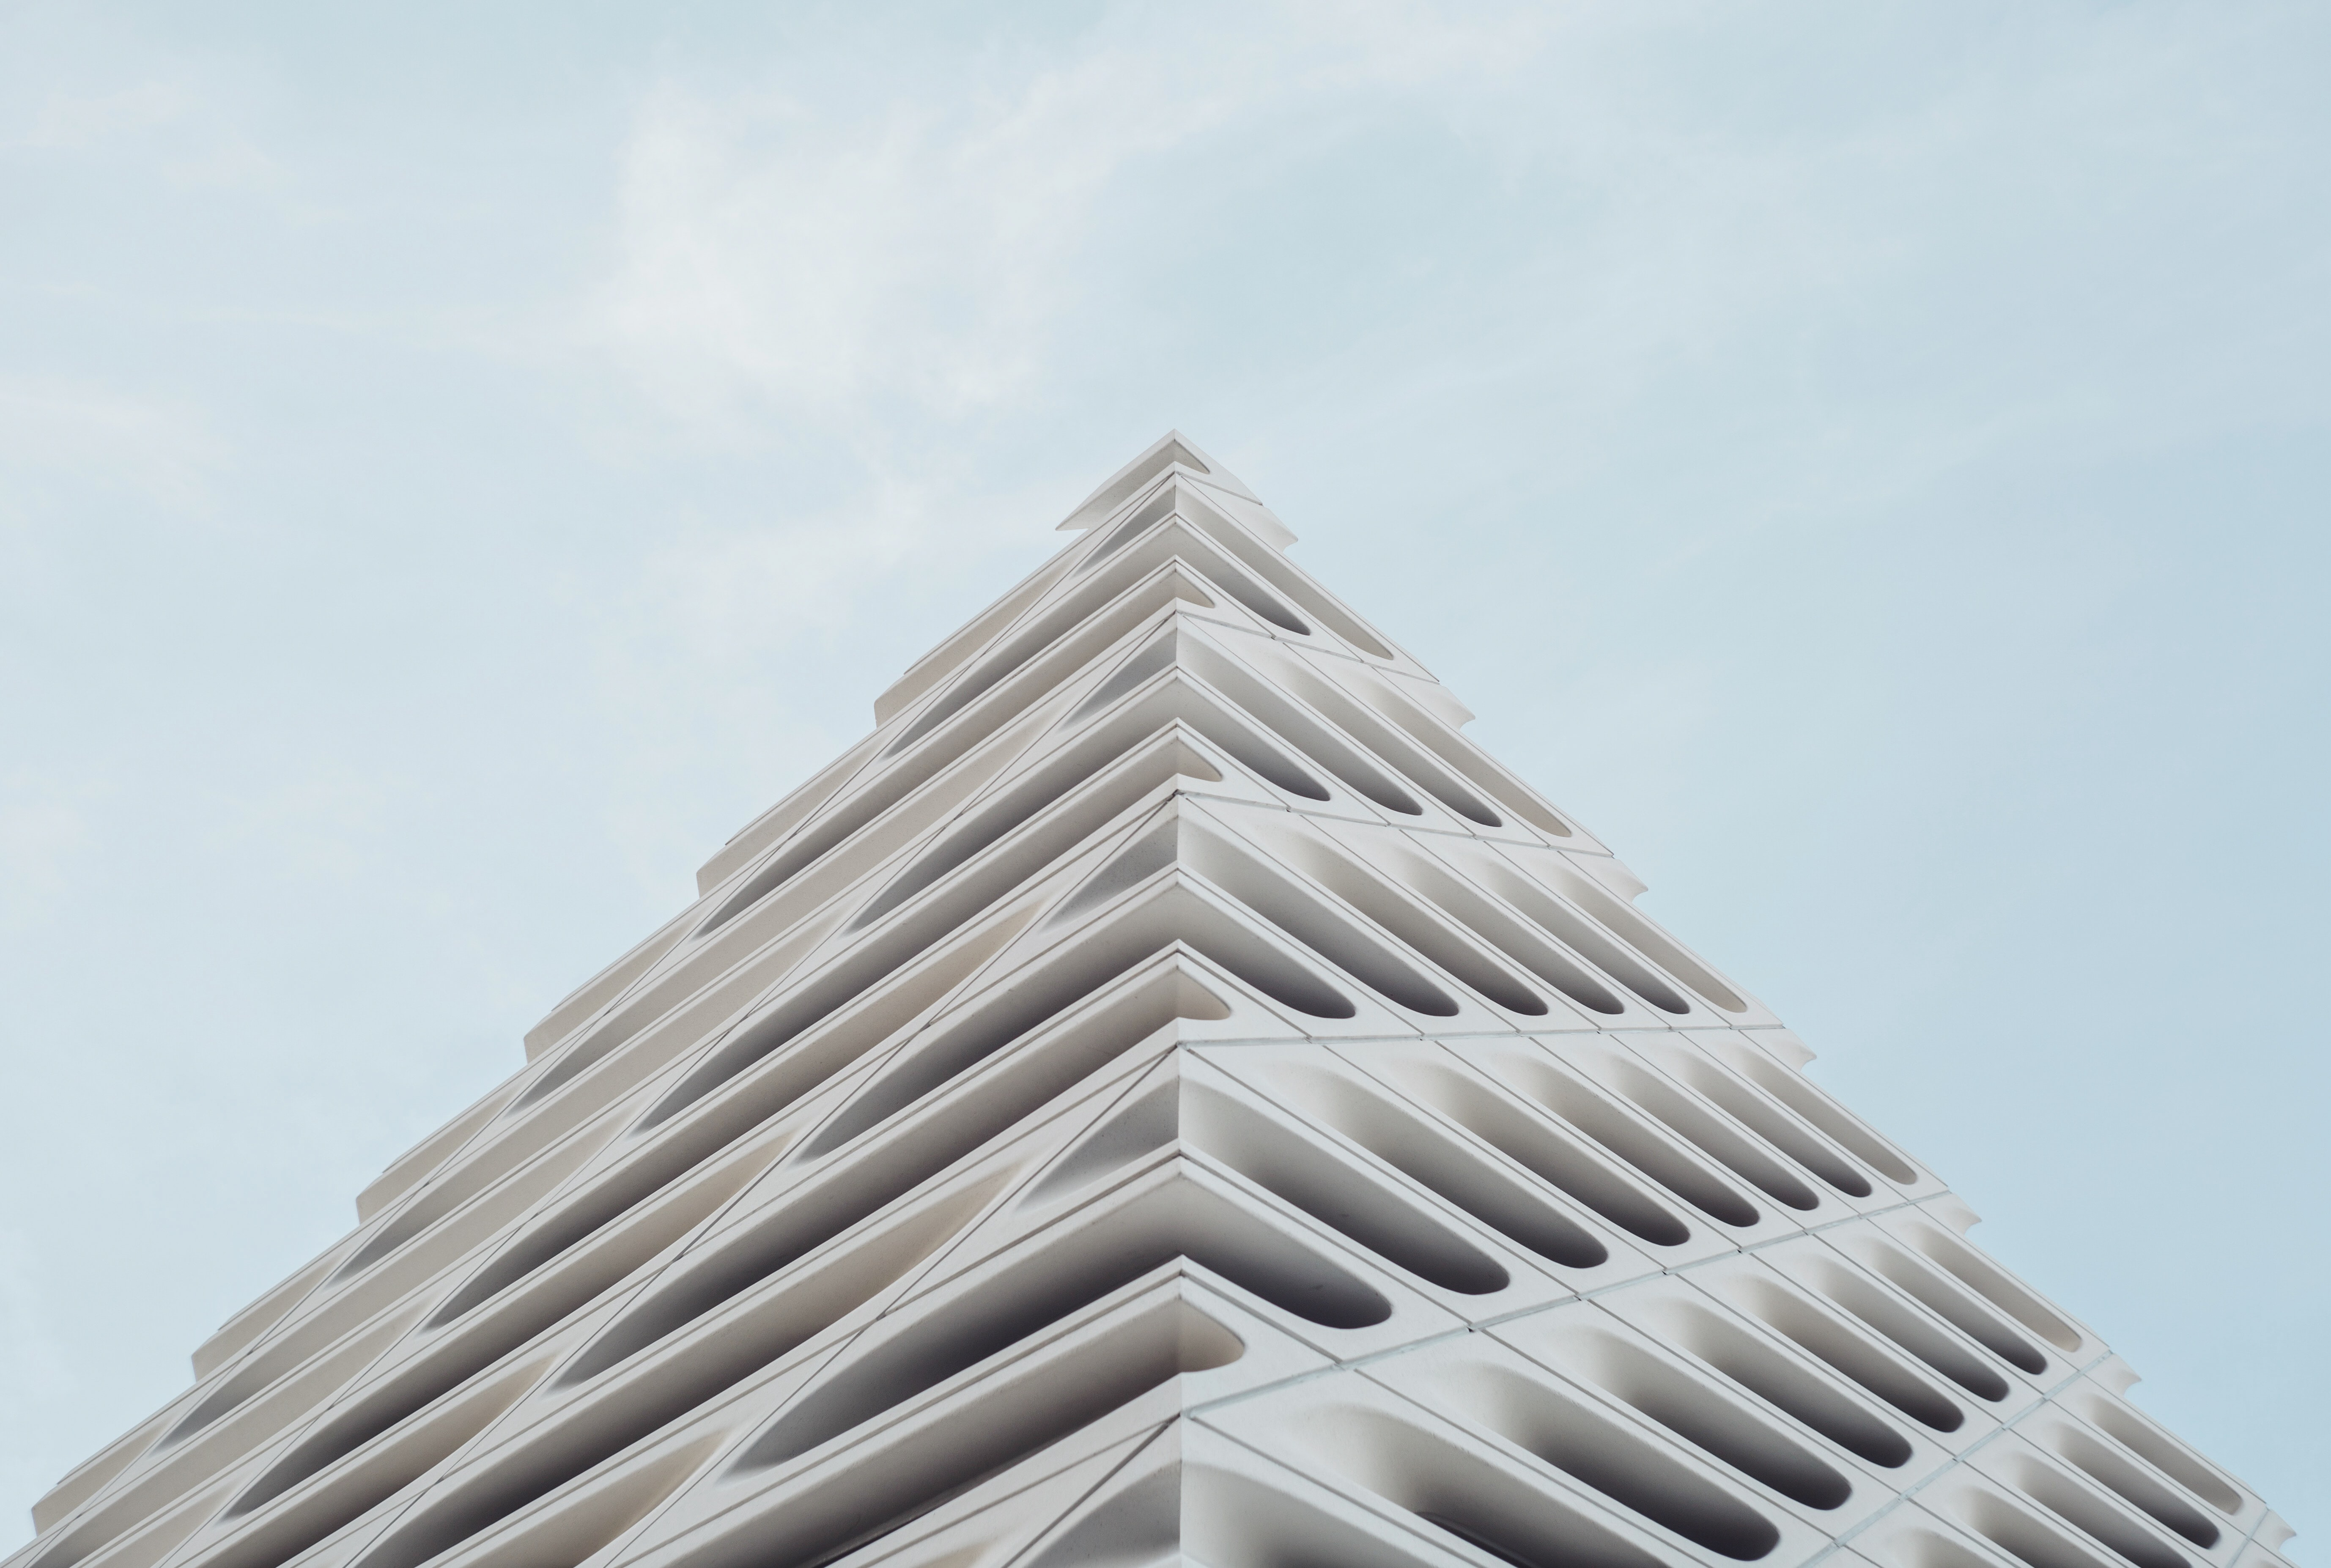 The top edge of an oddly shaped white facade